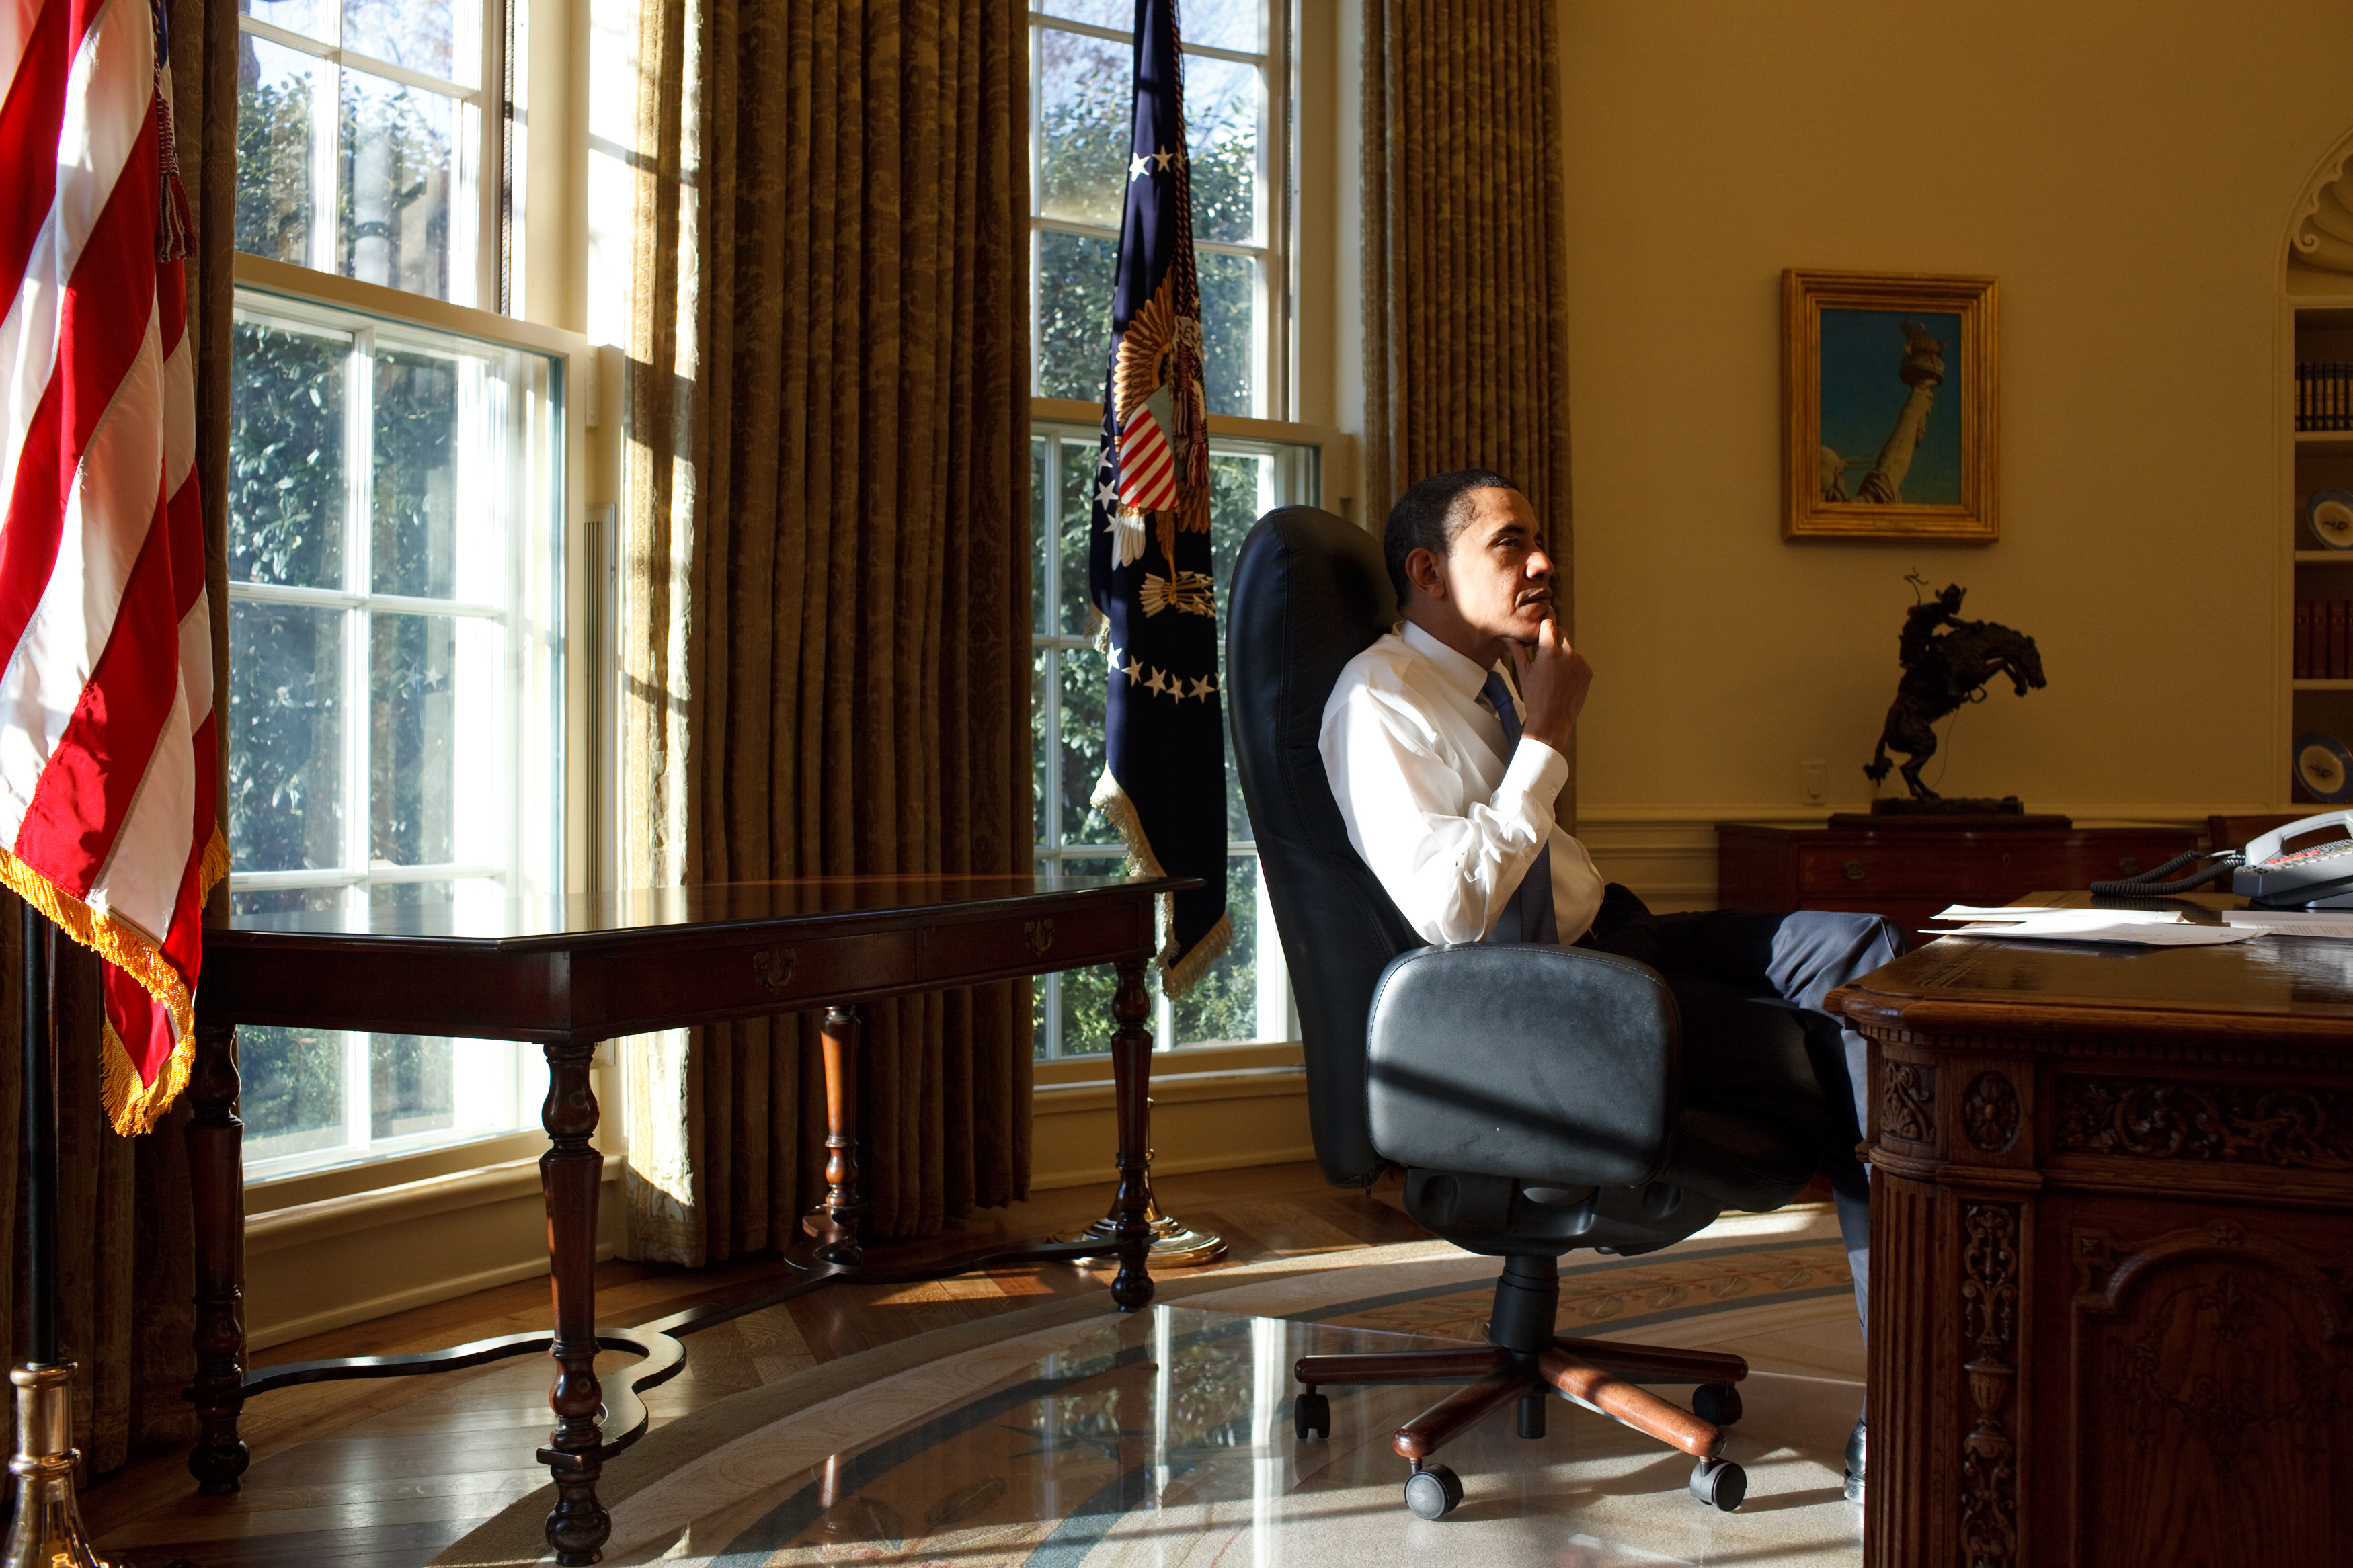 obamas oval office. File:Barack Obama Thinking, First Day In The Oval Office.jpg Obamas Office Y